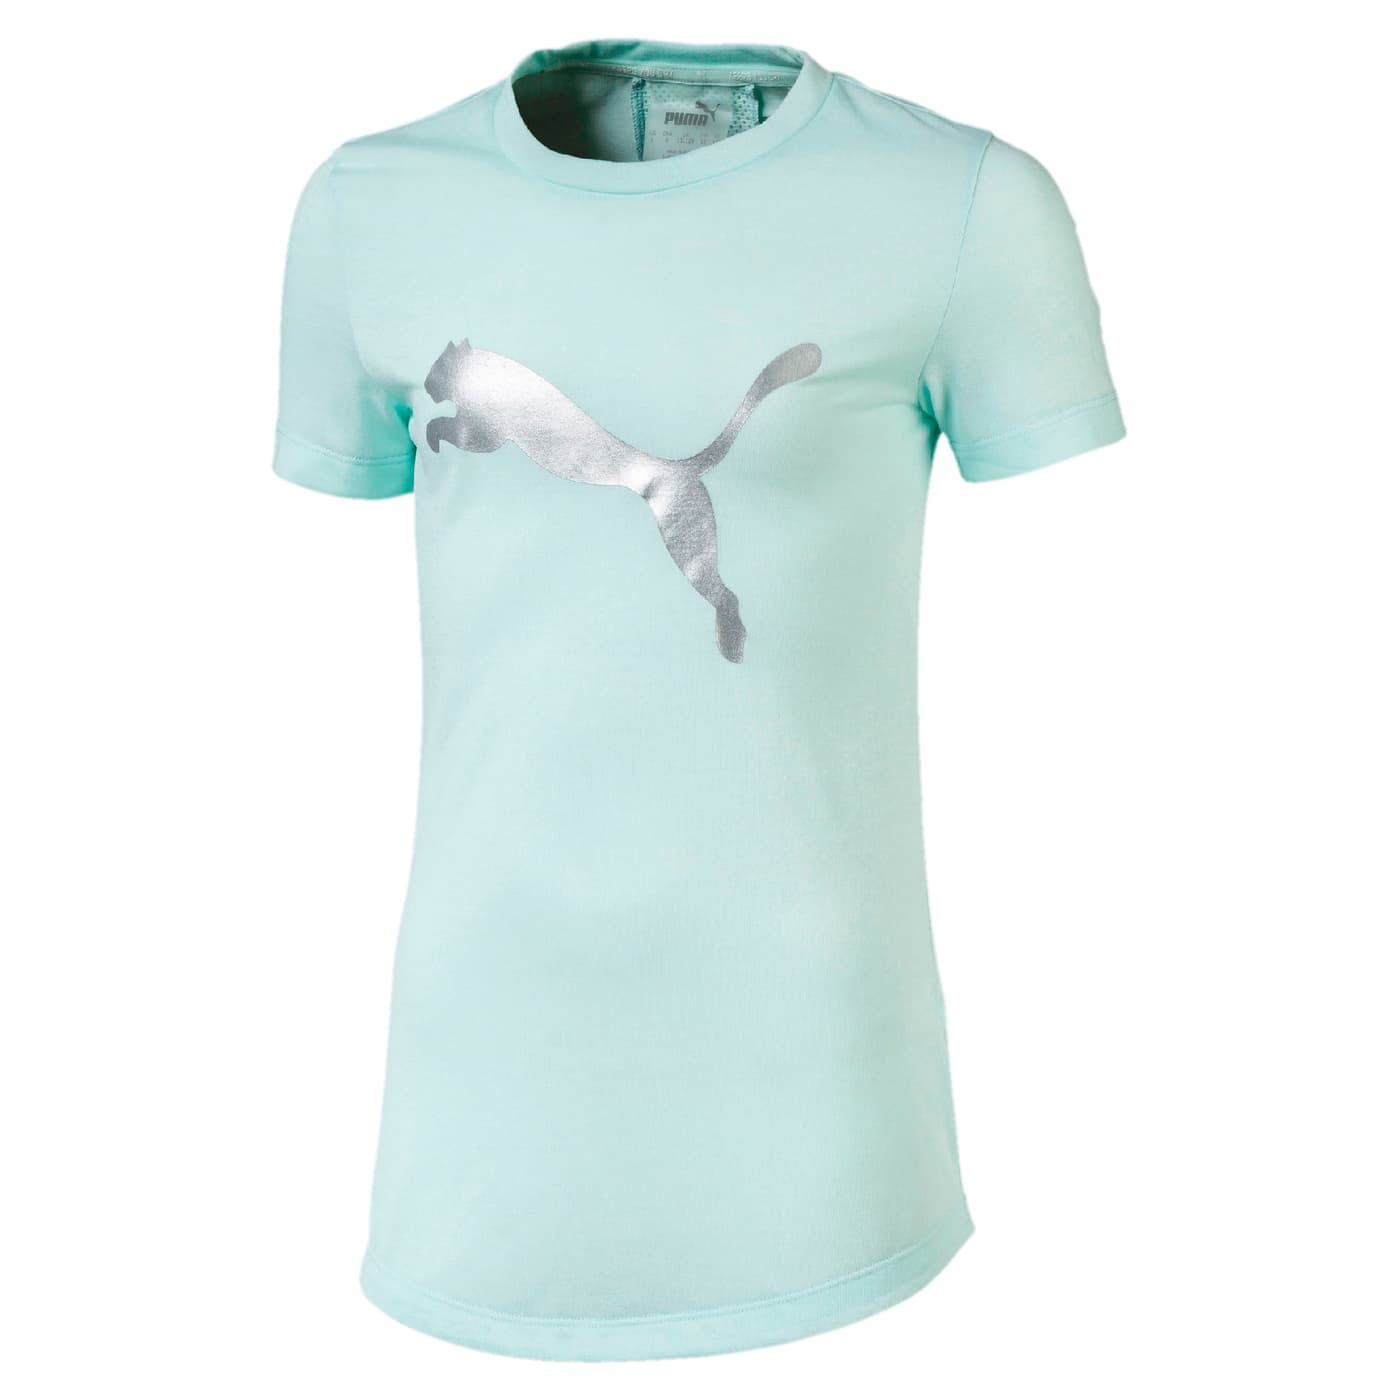 7a0510a3b30c3 Puma Active Sport Tee G Maillot pour fille | Migros